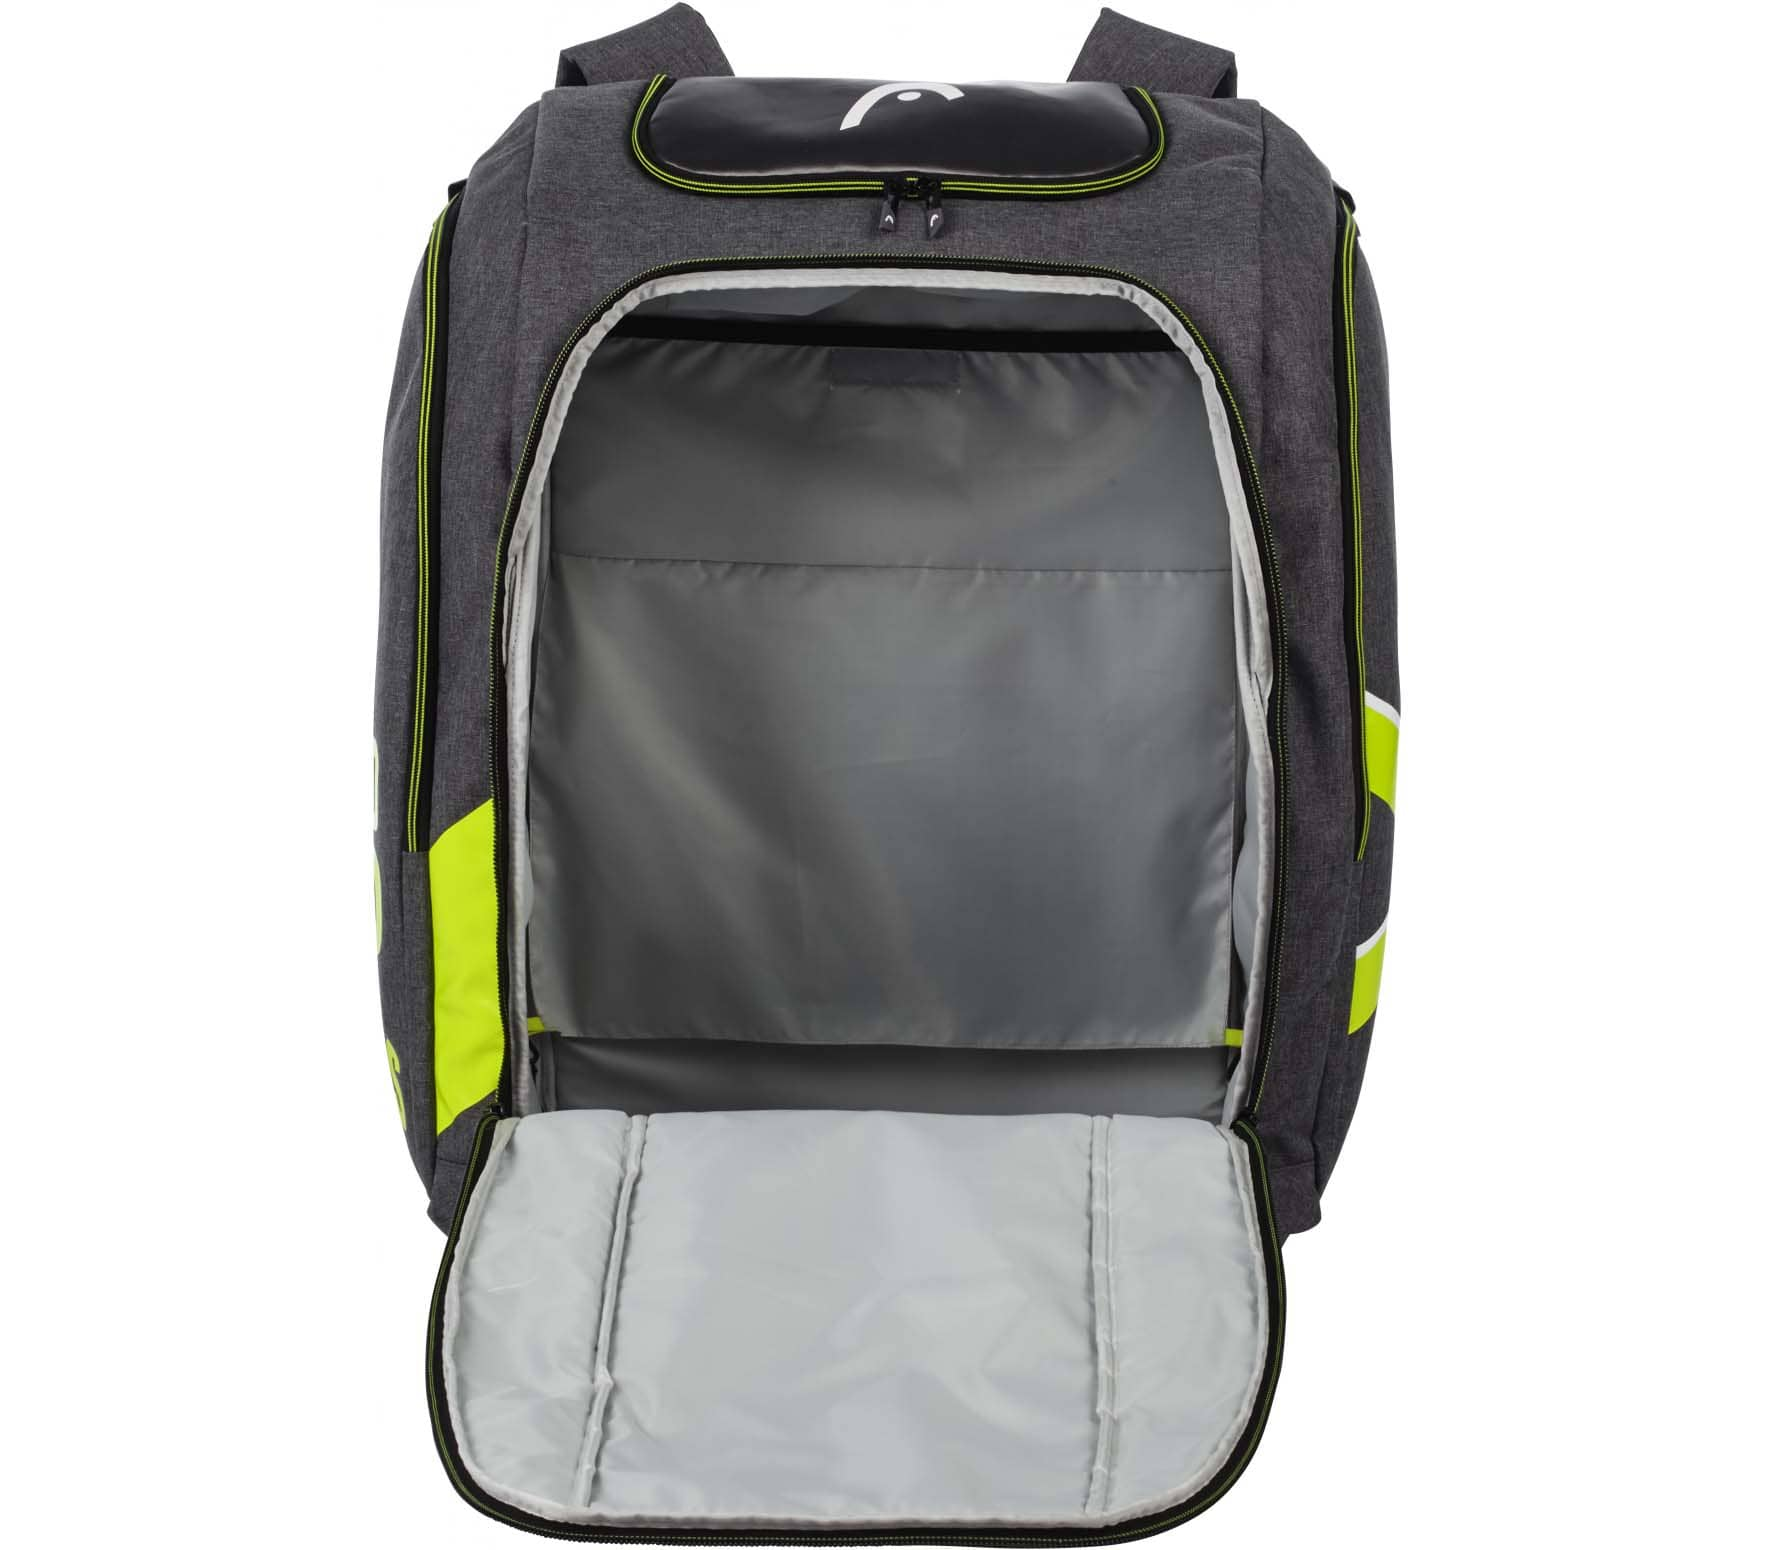 Head - Rebels Racing backpack L skis boot bag (grey)